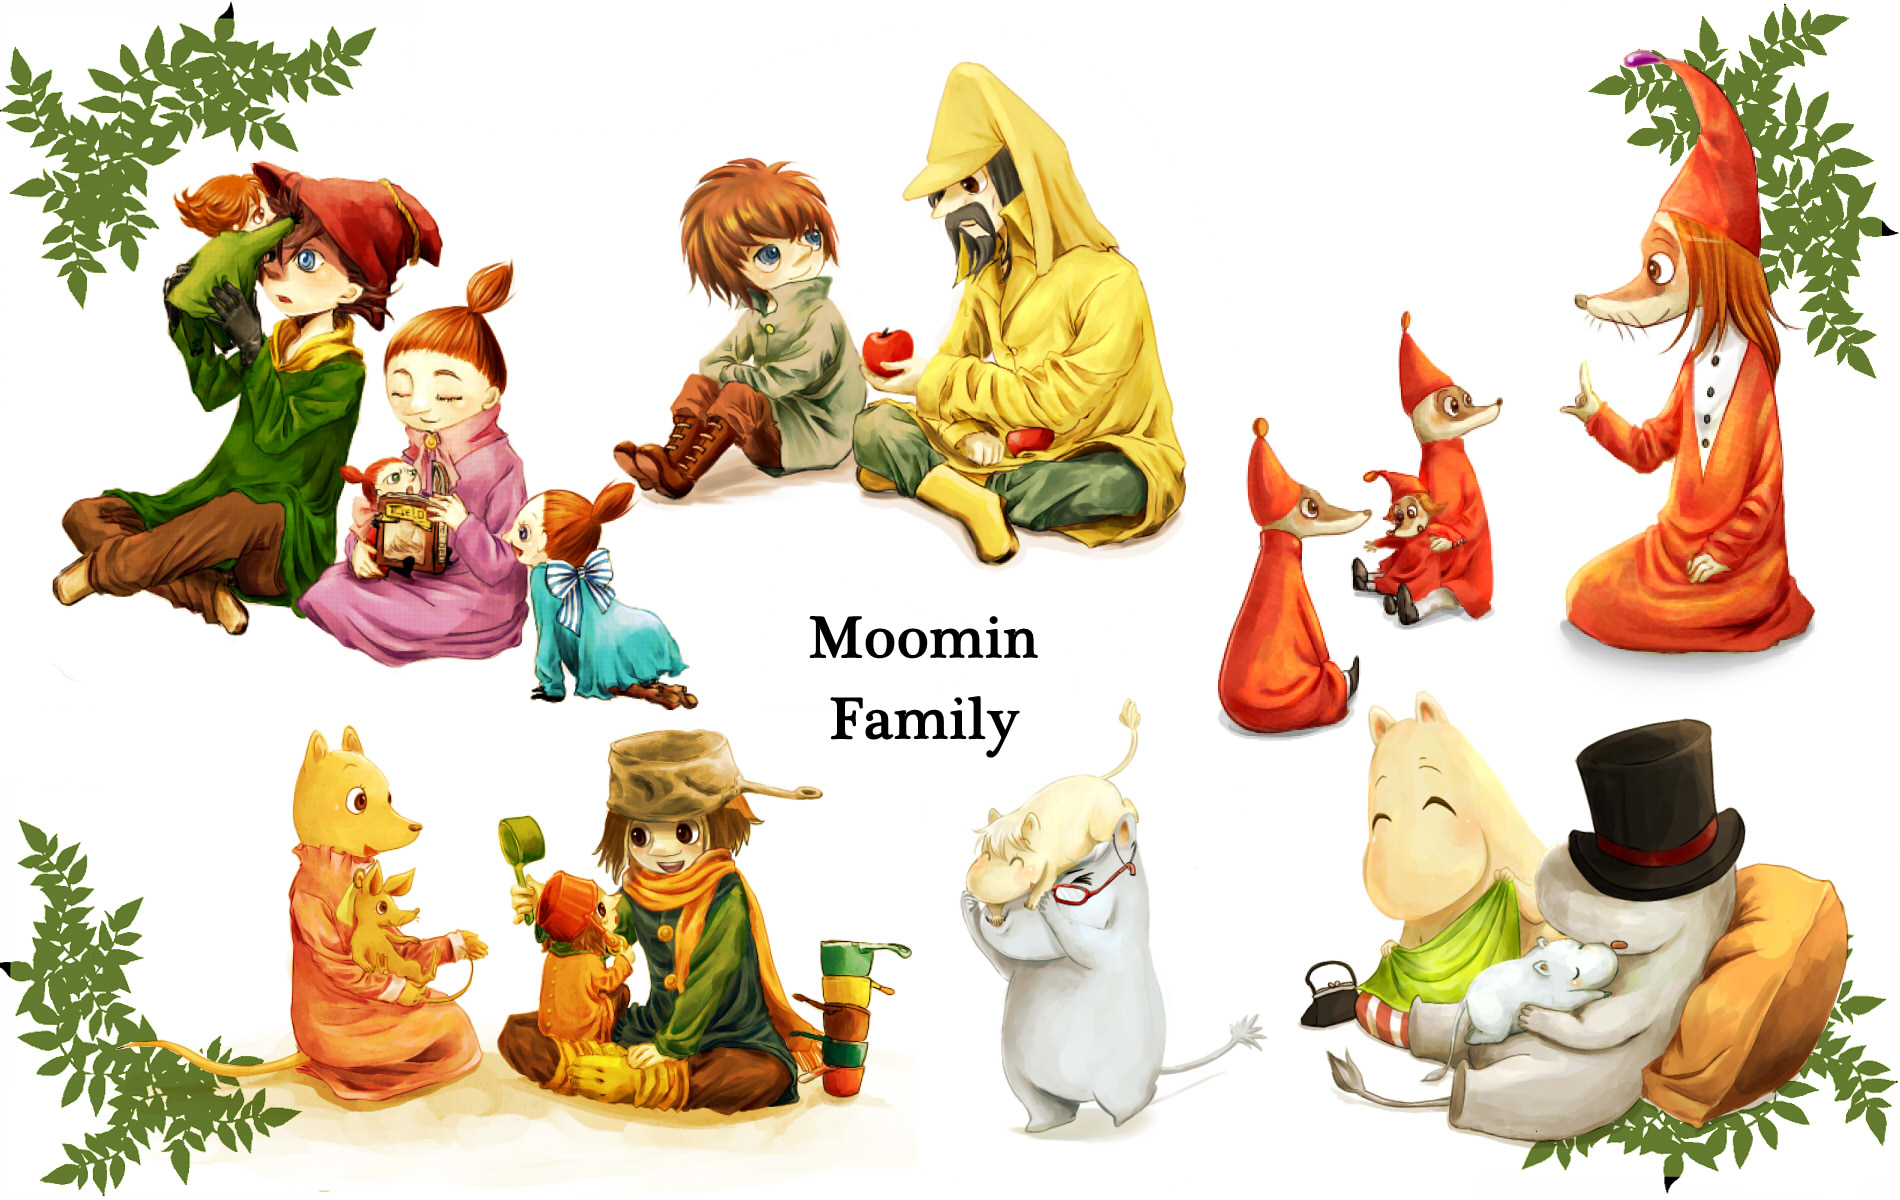 Request: Sniff From The Moomins by kammakitty on DeviantArt